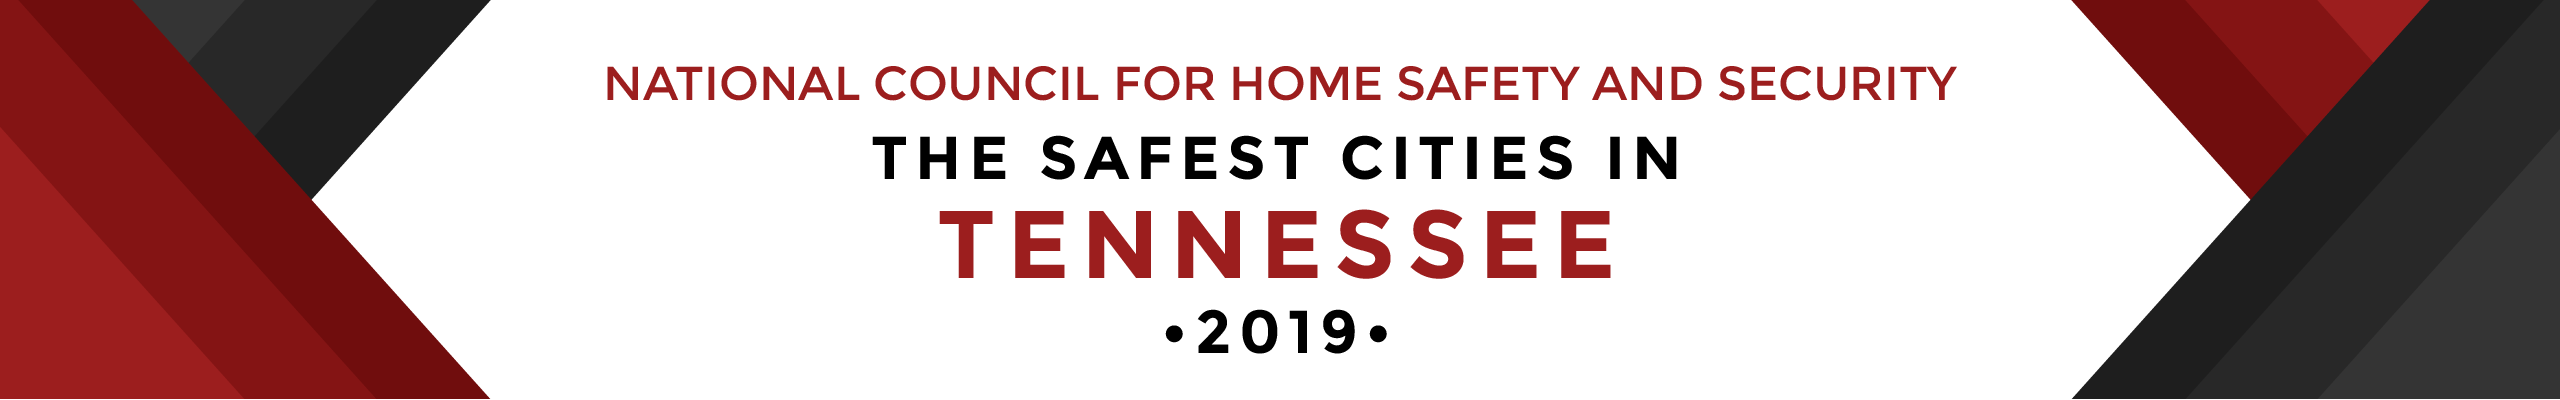 Safest Cities Tennessee - header